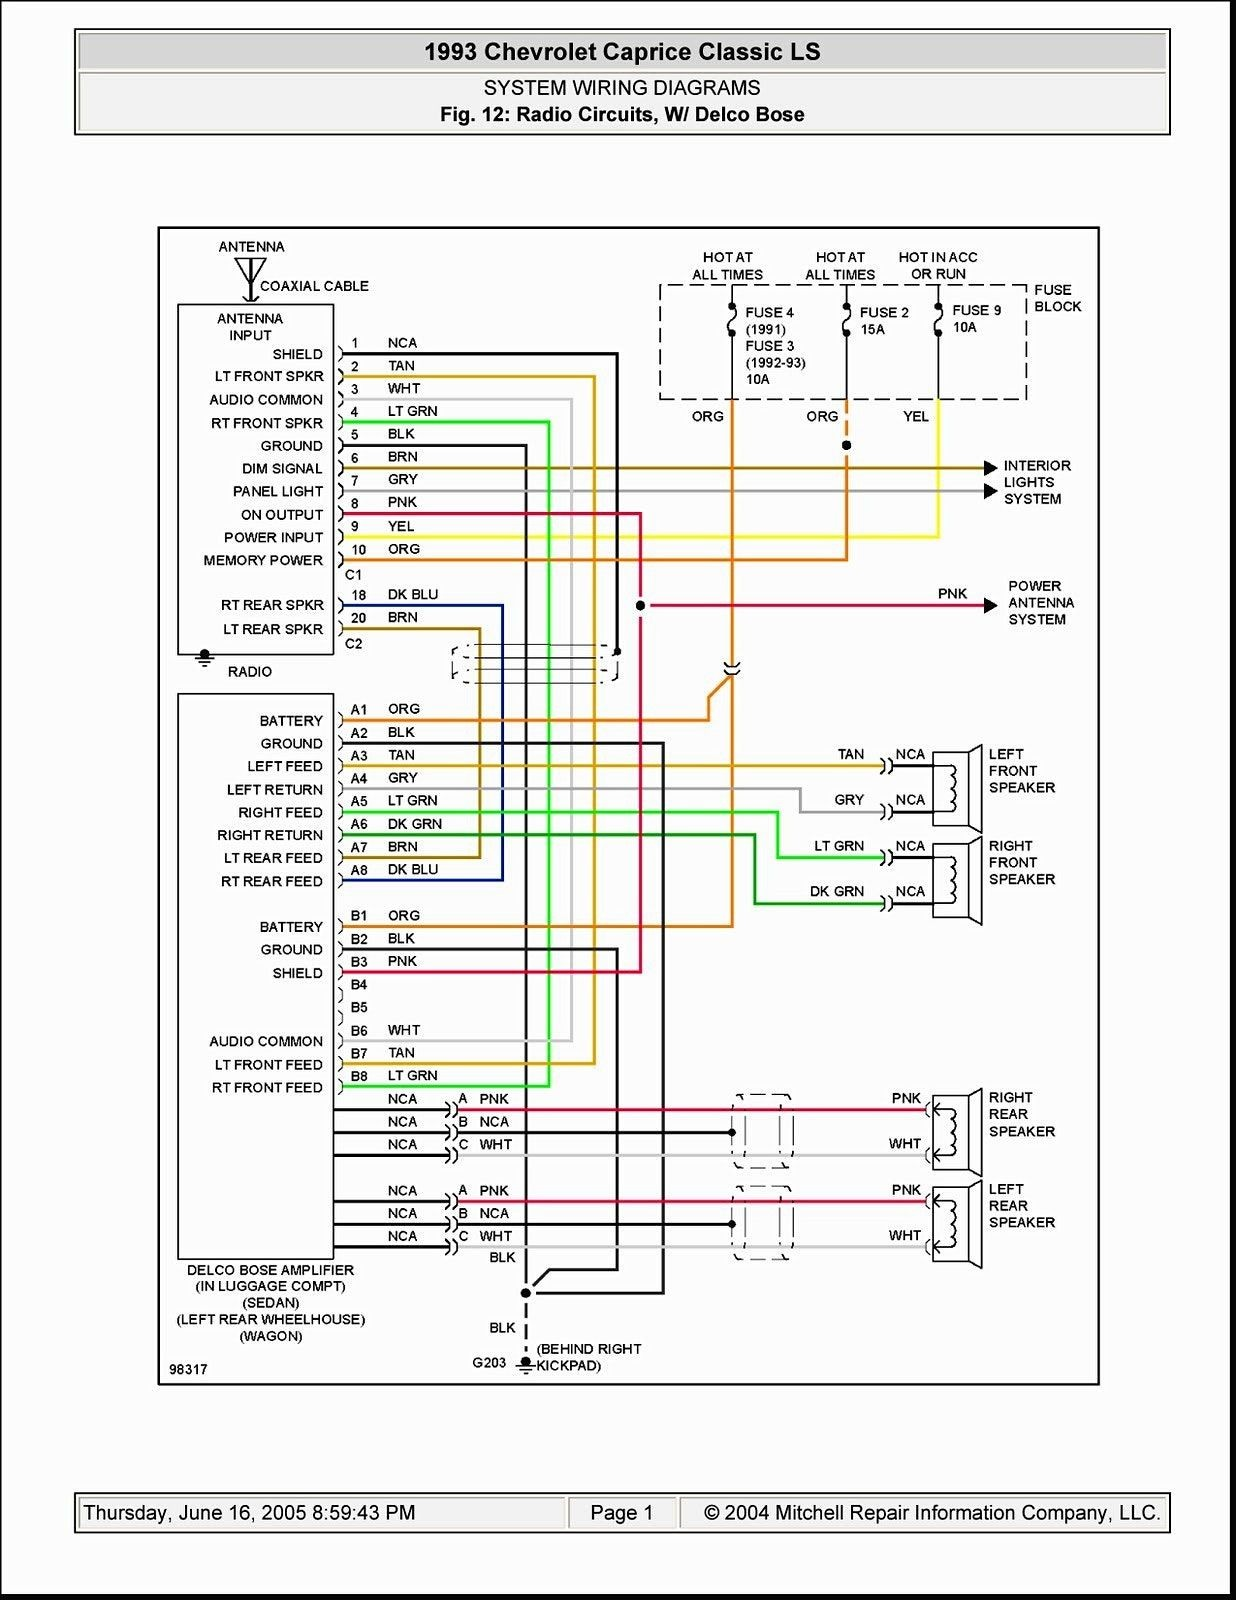 Renault Trafic Engine Diagram Renault Trafic Radio Wiring Diagram In 94 ford Ranger Sevimliler Of Renault Trafic Engine Diagram